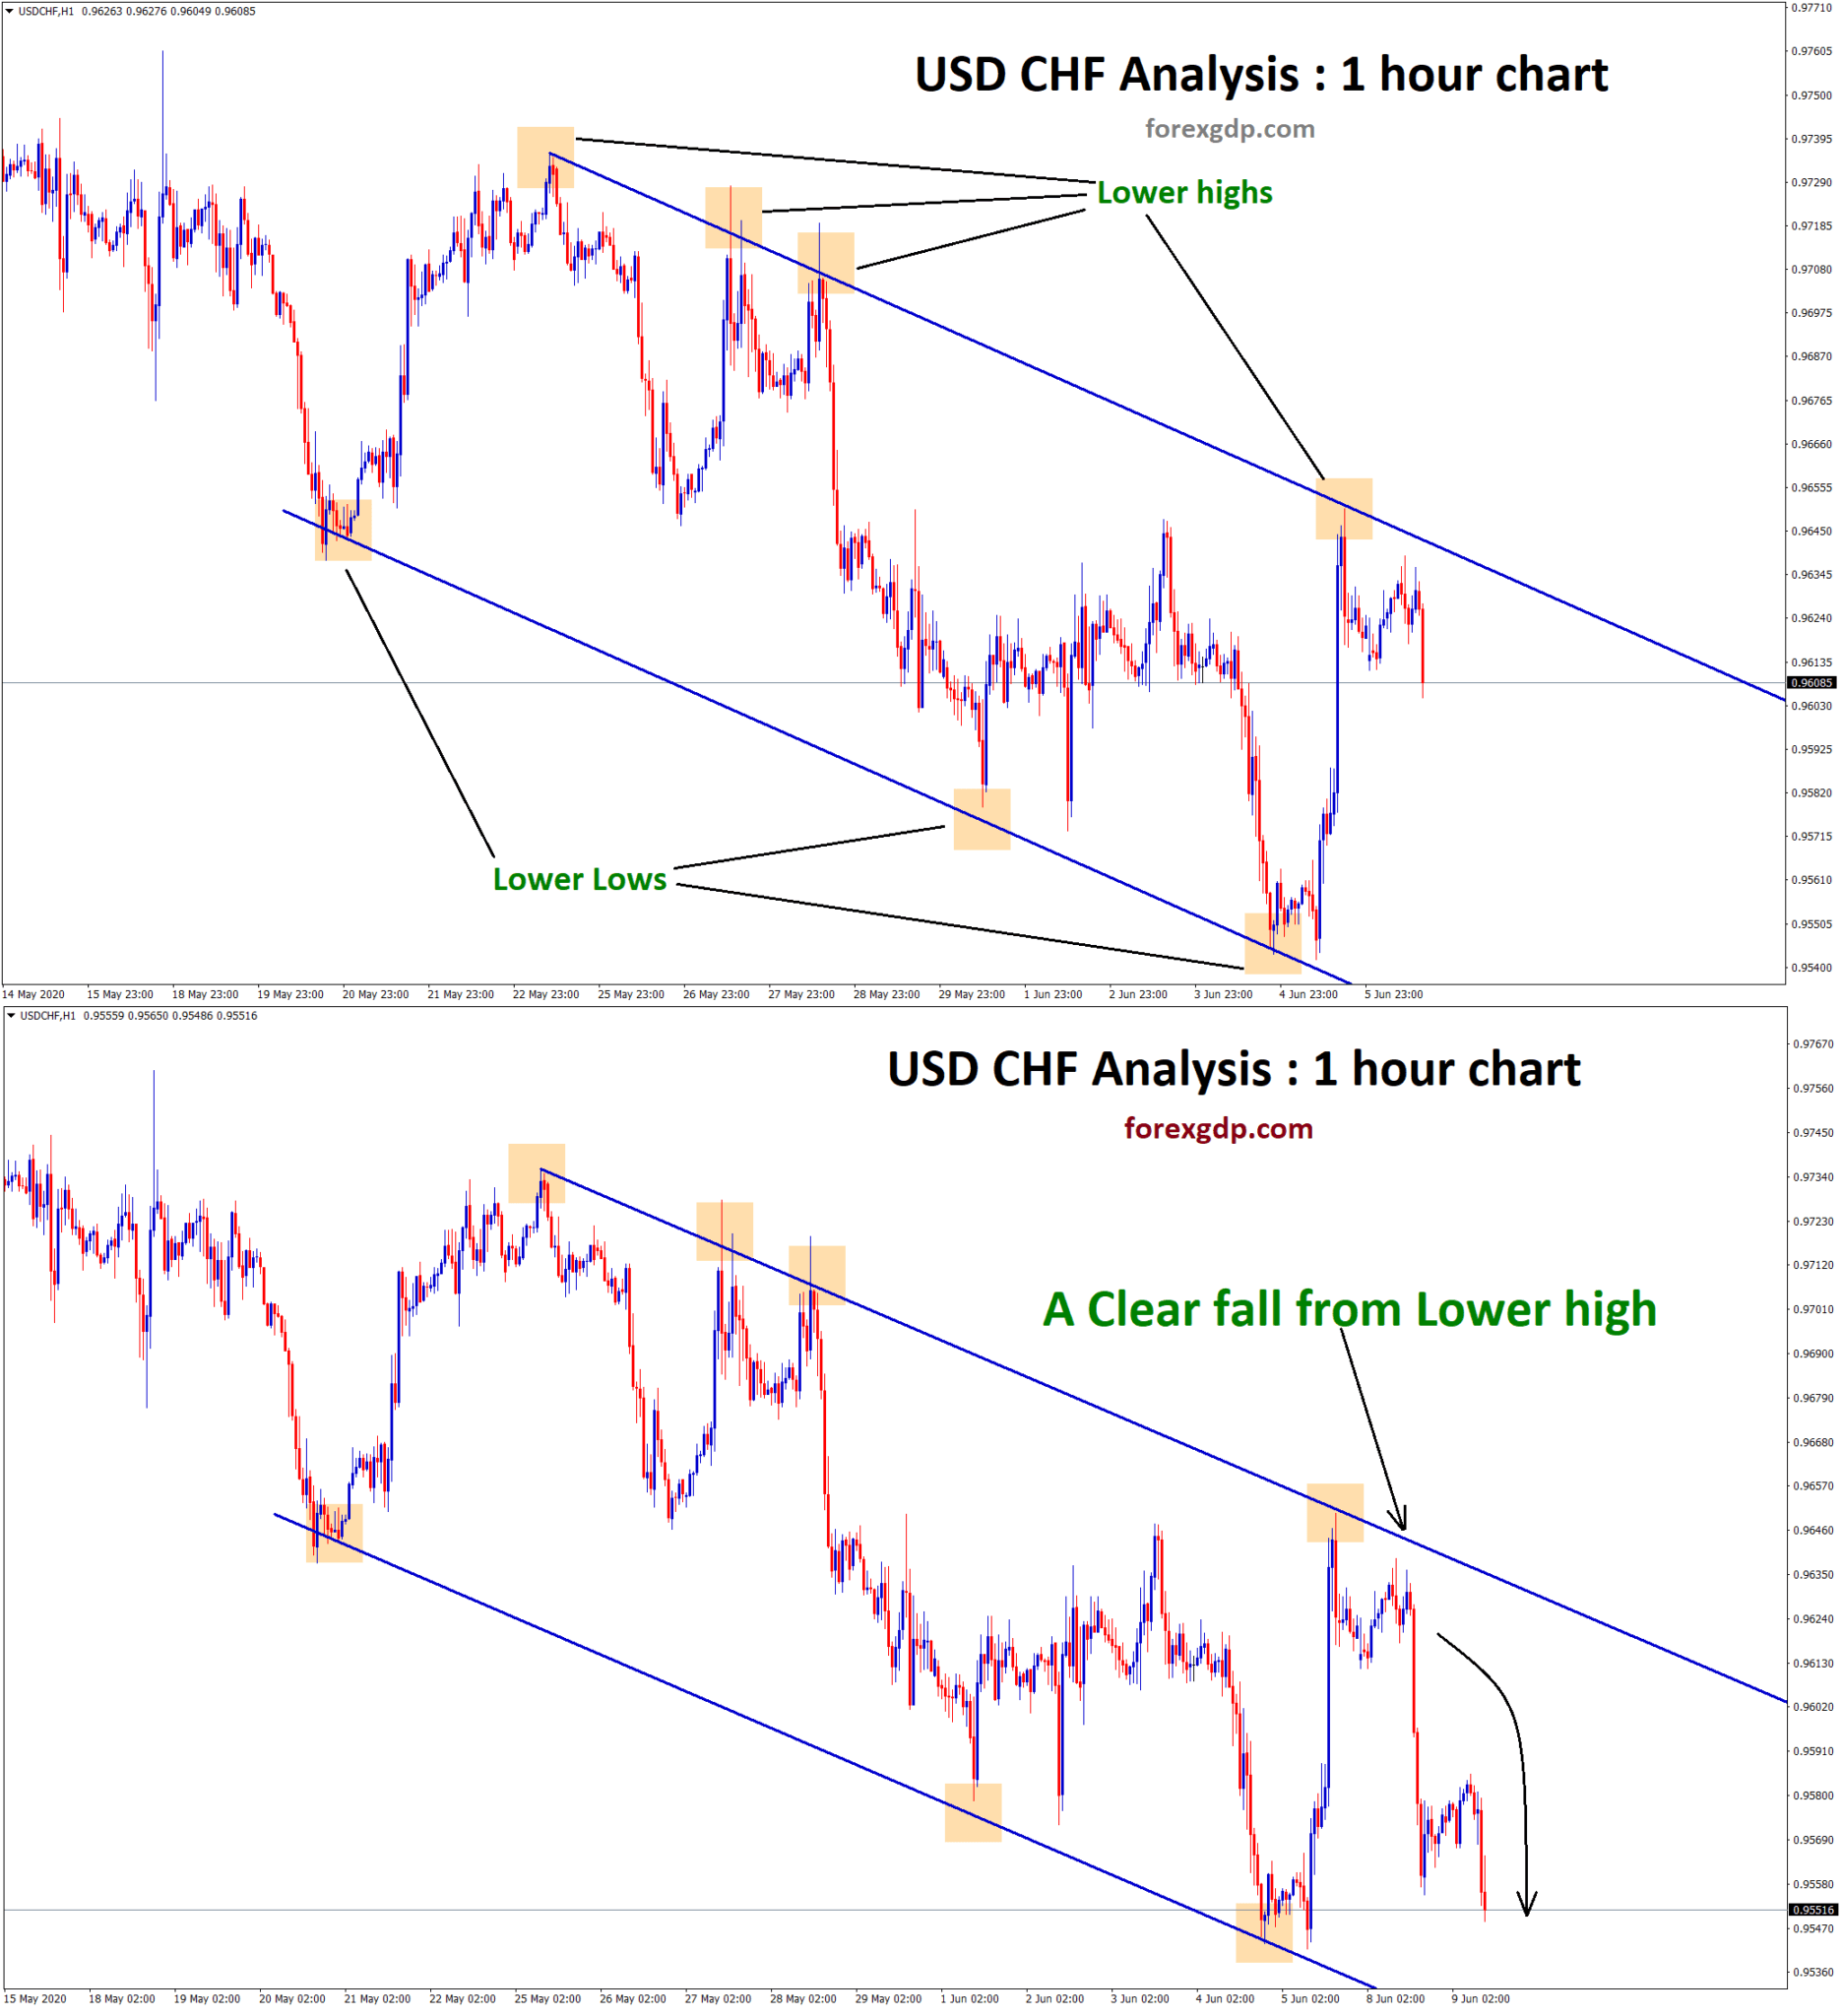 usdchf clear fall from lower high